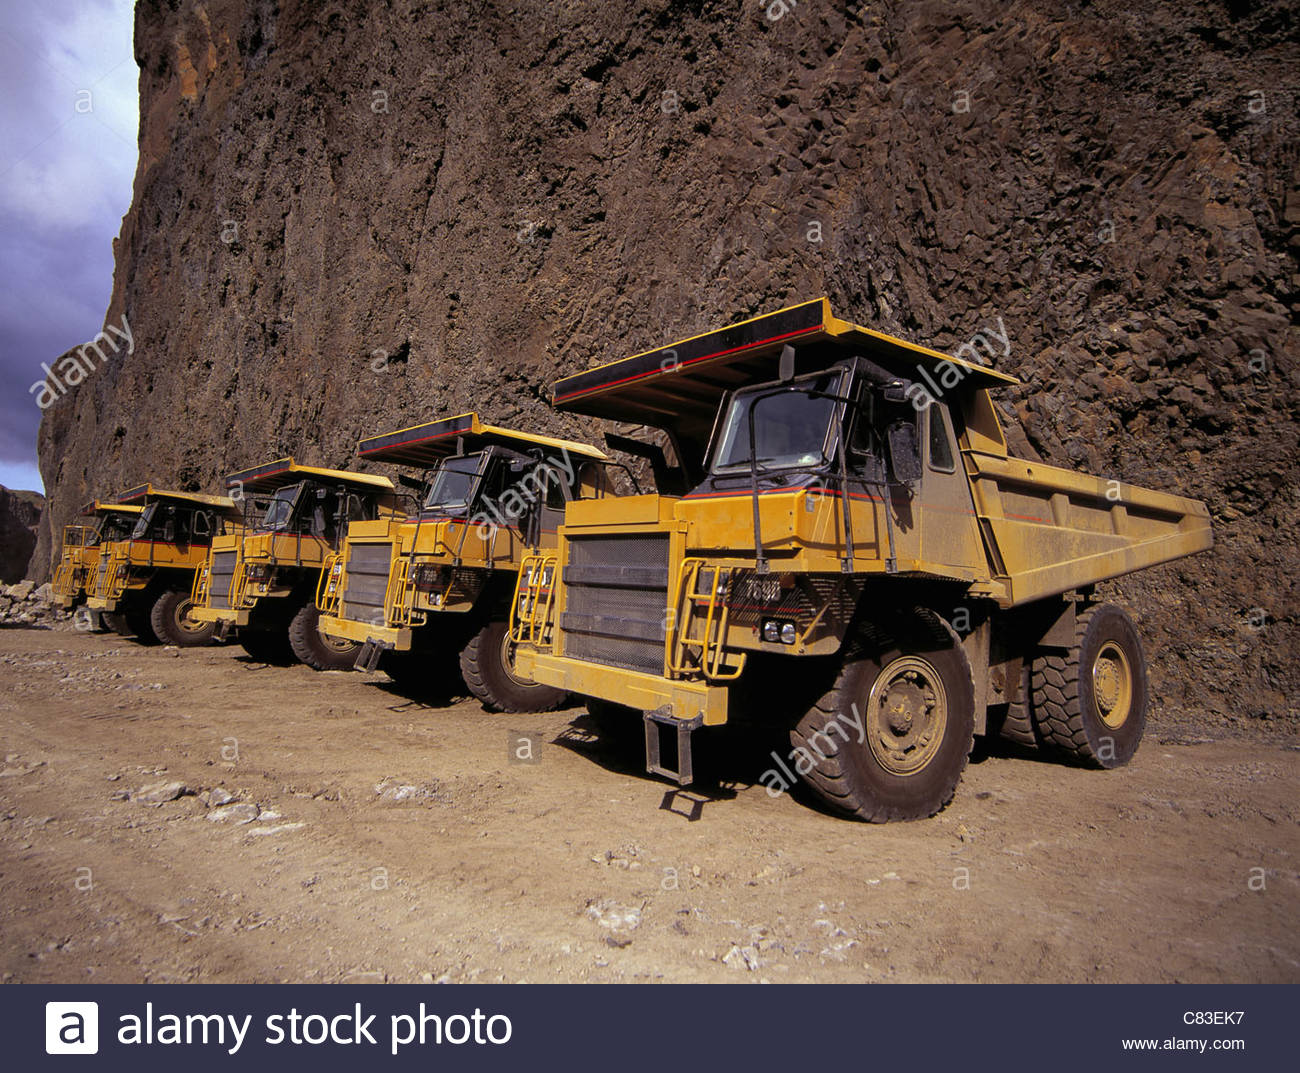 Dump trucks parked at quarry - Stock Image